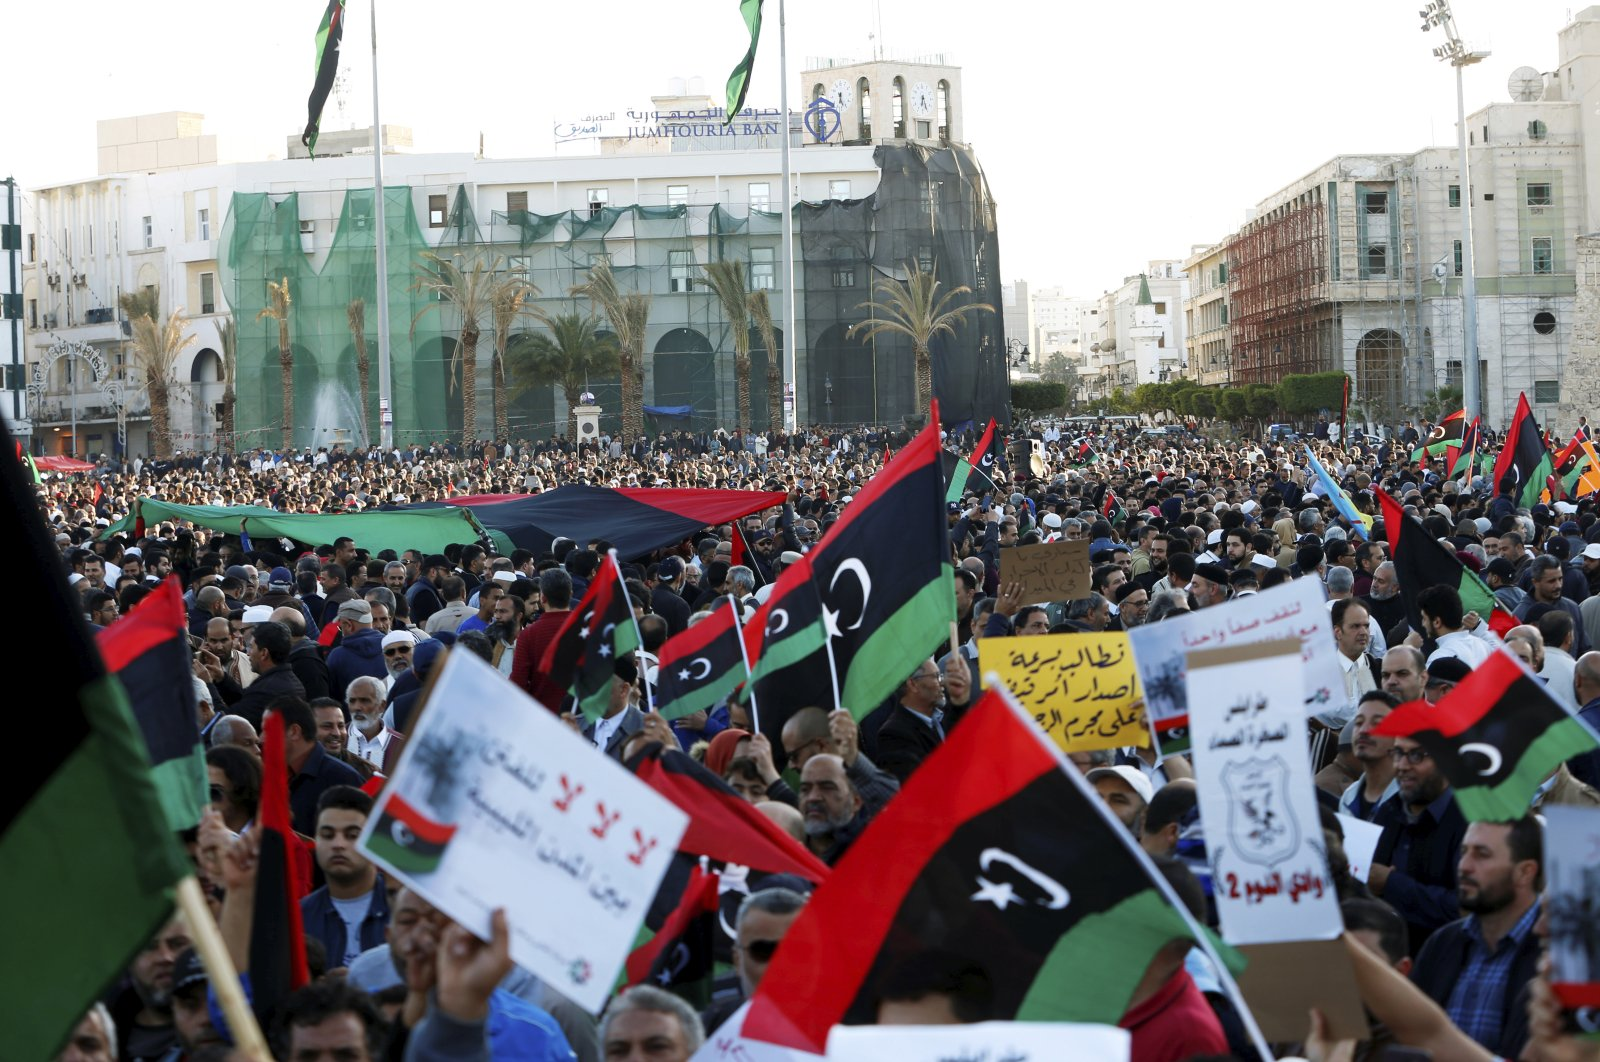 Libyan protesters attend a demonstration to demand an end to putschist Gen. Khalifa Haftar's offensive against Tripoli, in Martyrs Square in central Tripoli, Apr. 12, 2019. (REUTERS Photo)